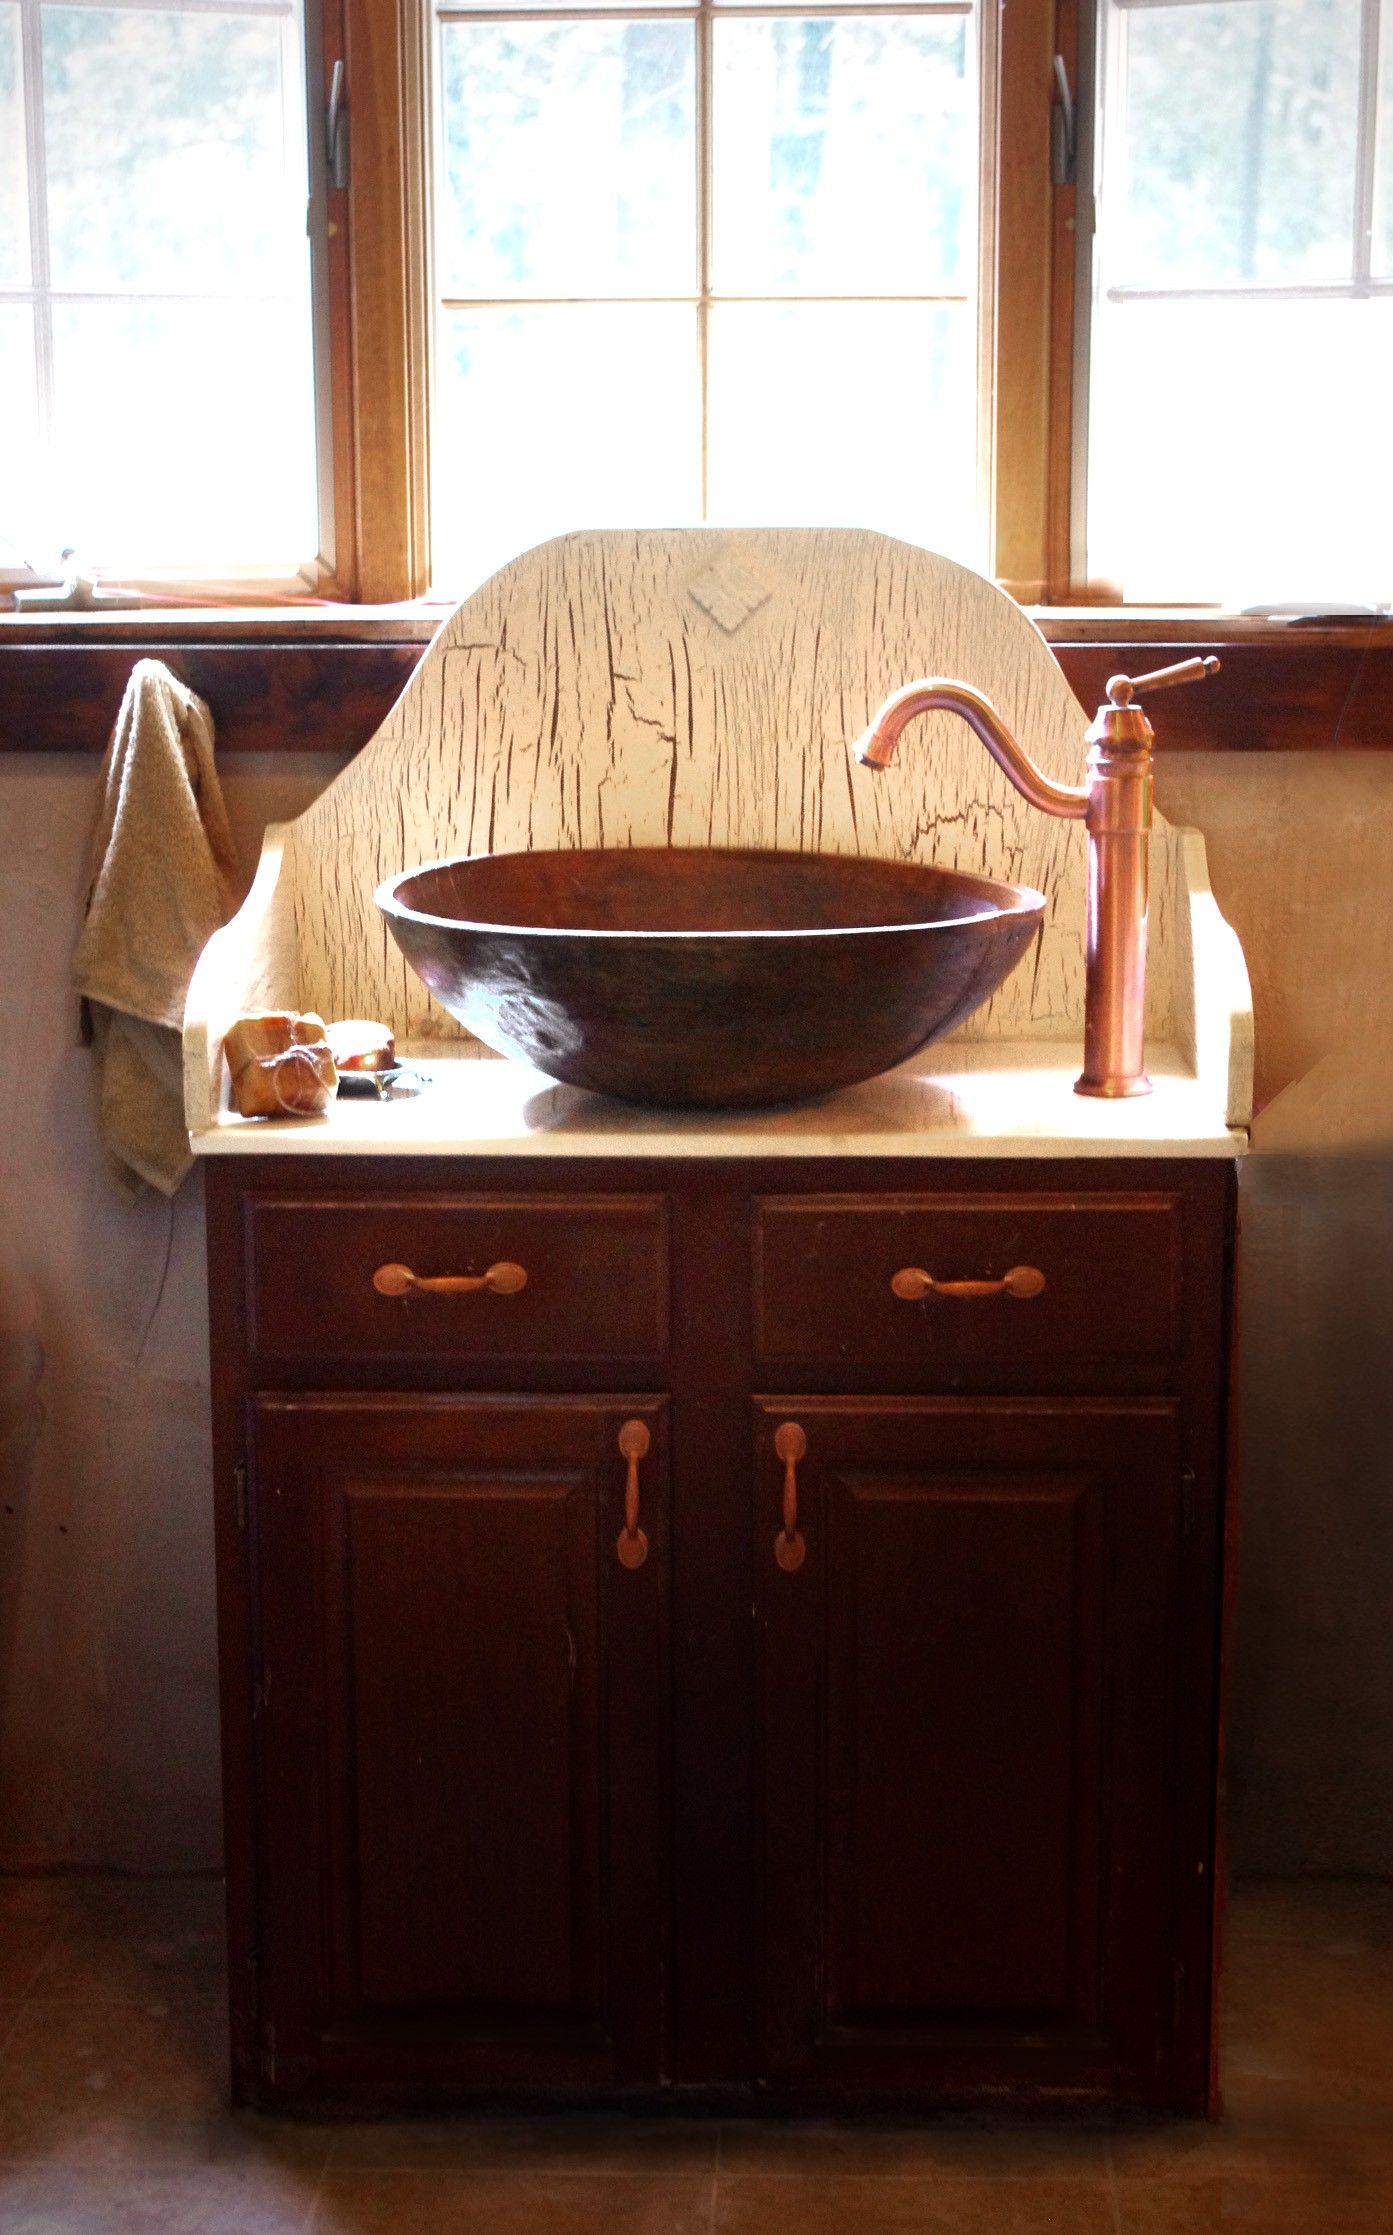 Vintage bathroom sinks - Vintage Brown Stained Wooden Vanities With Copper Vessel Sink And Bronze Metal